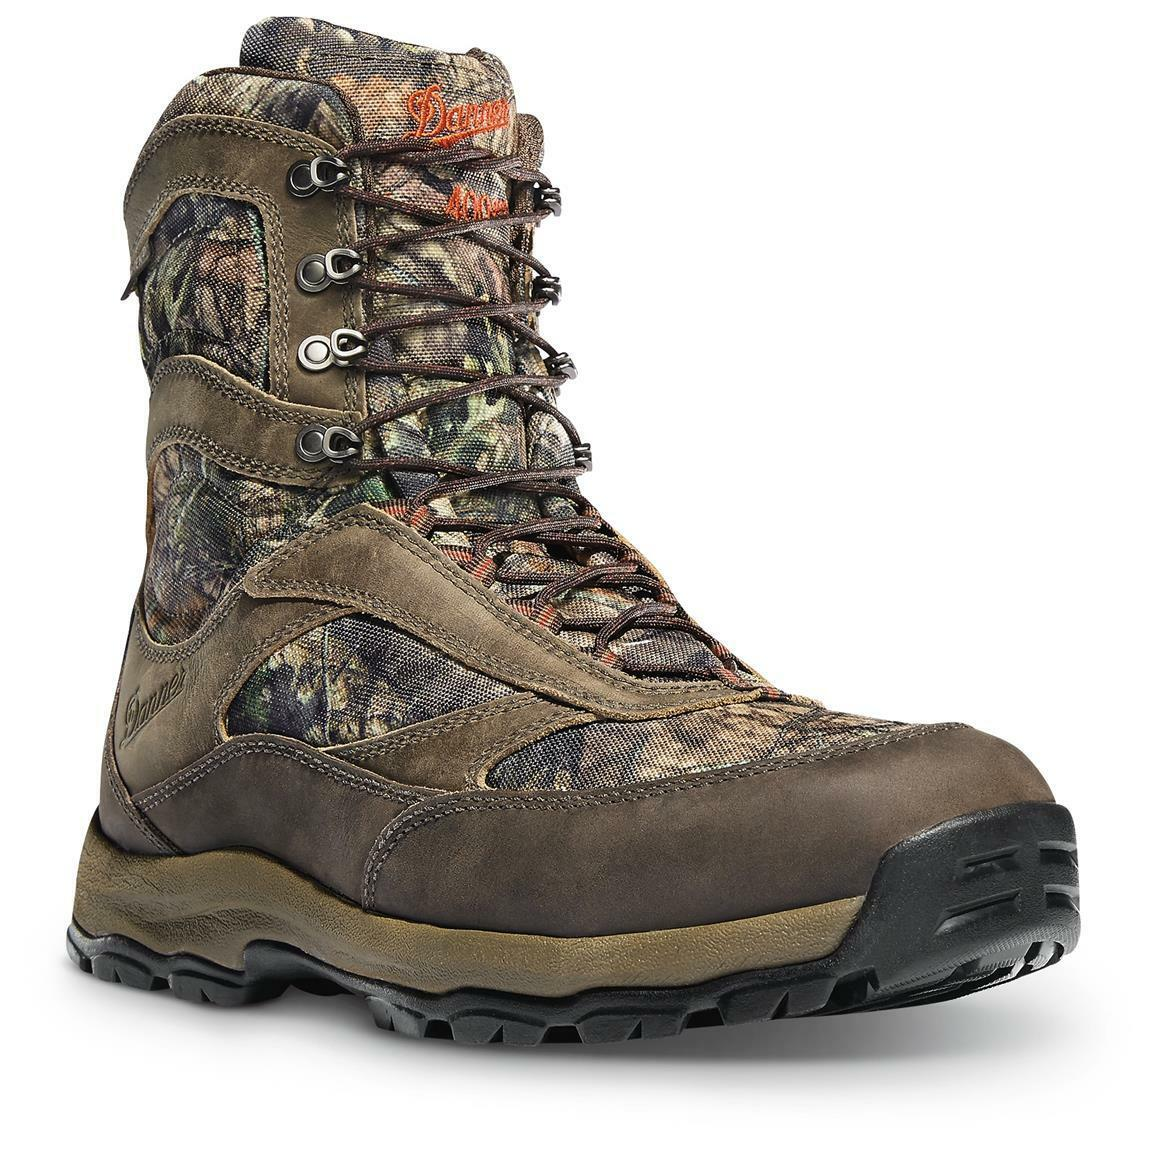 NEW Danner High Ground 400G Hunting Boots, 8